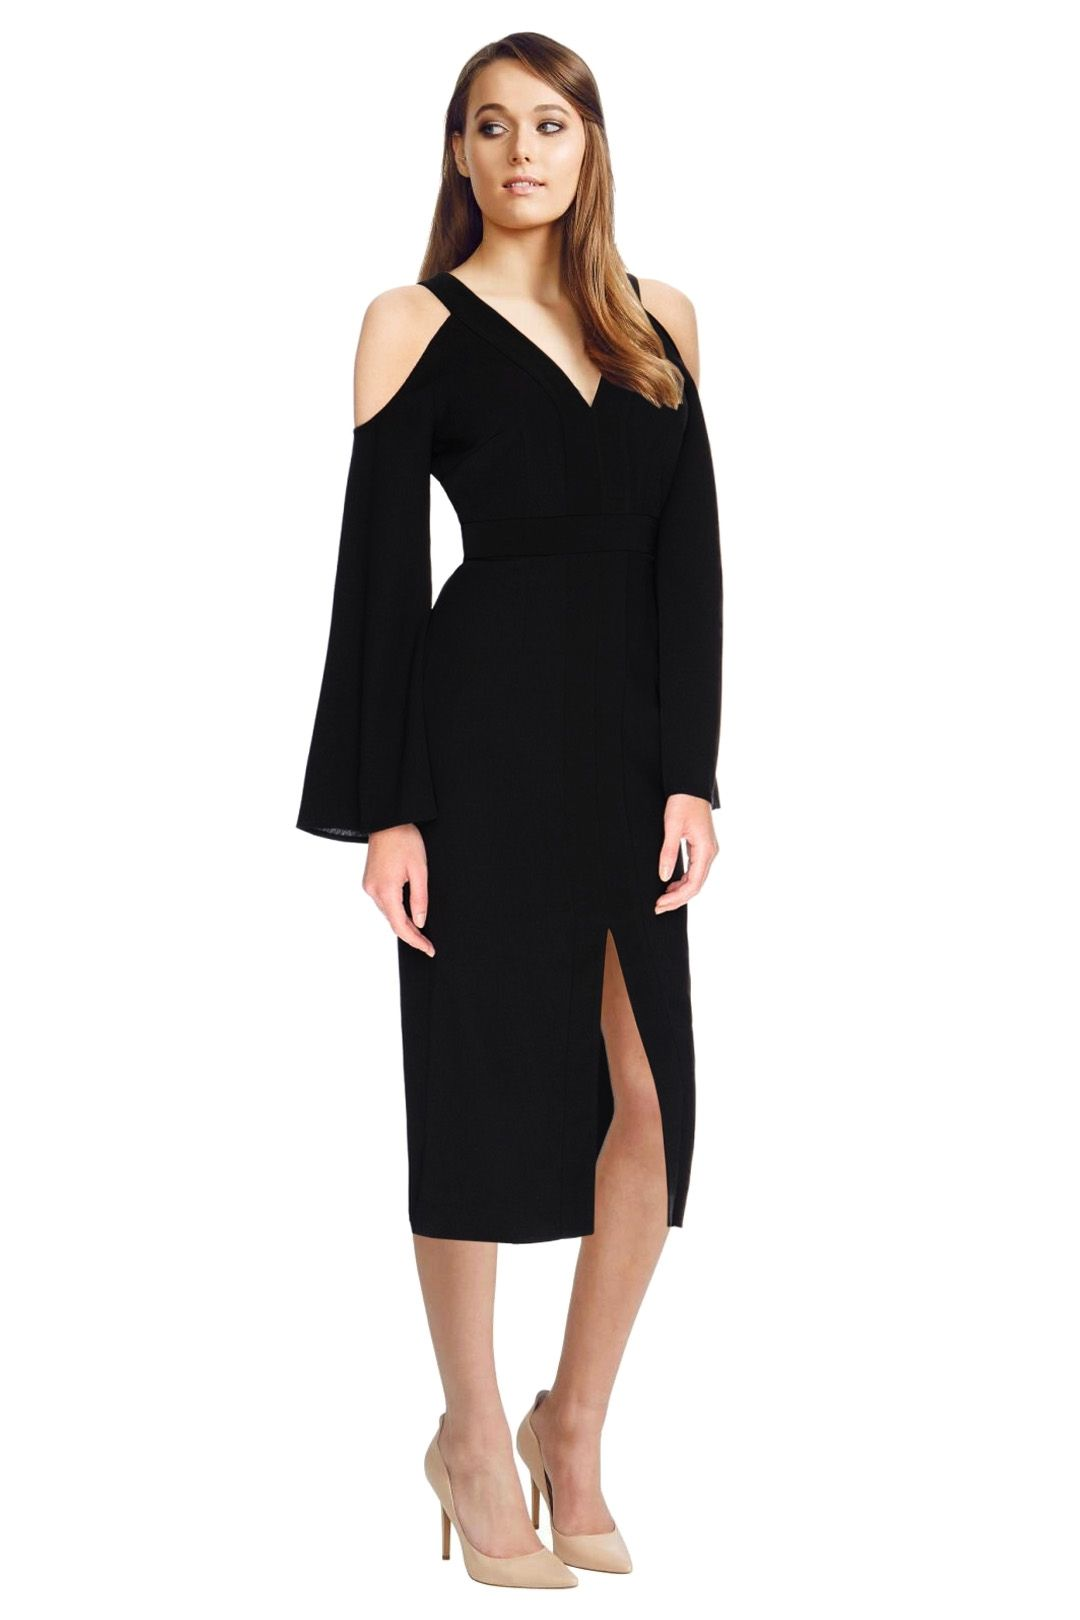 Keepsake the Label - In Motion Dress - Black - Side